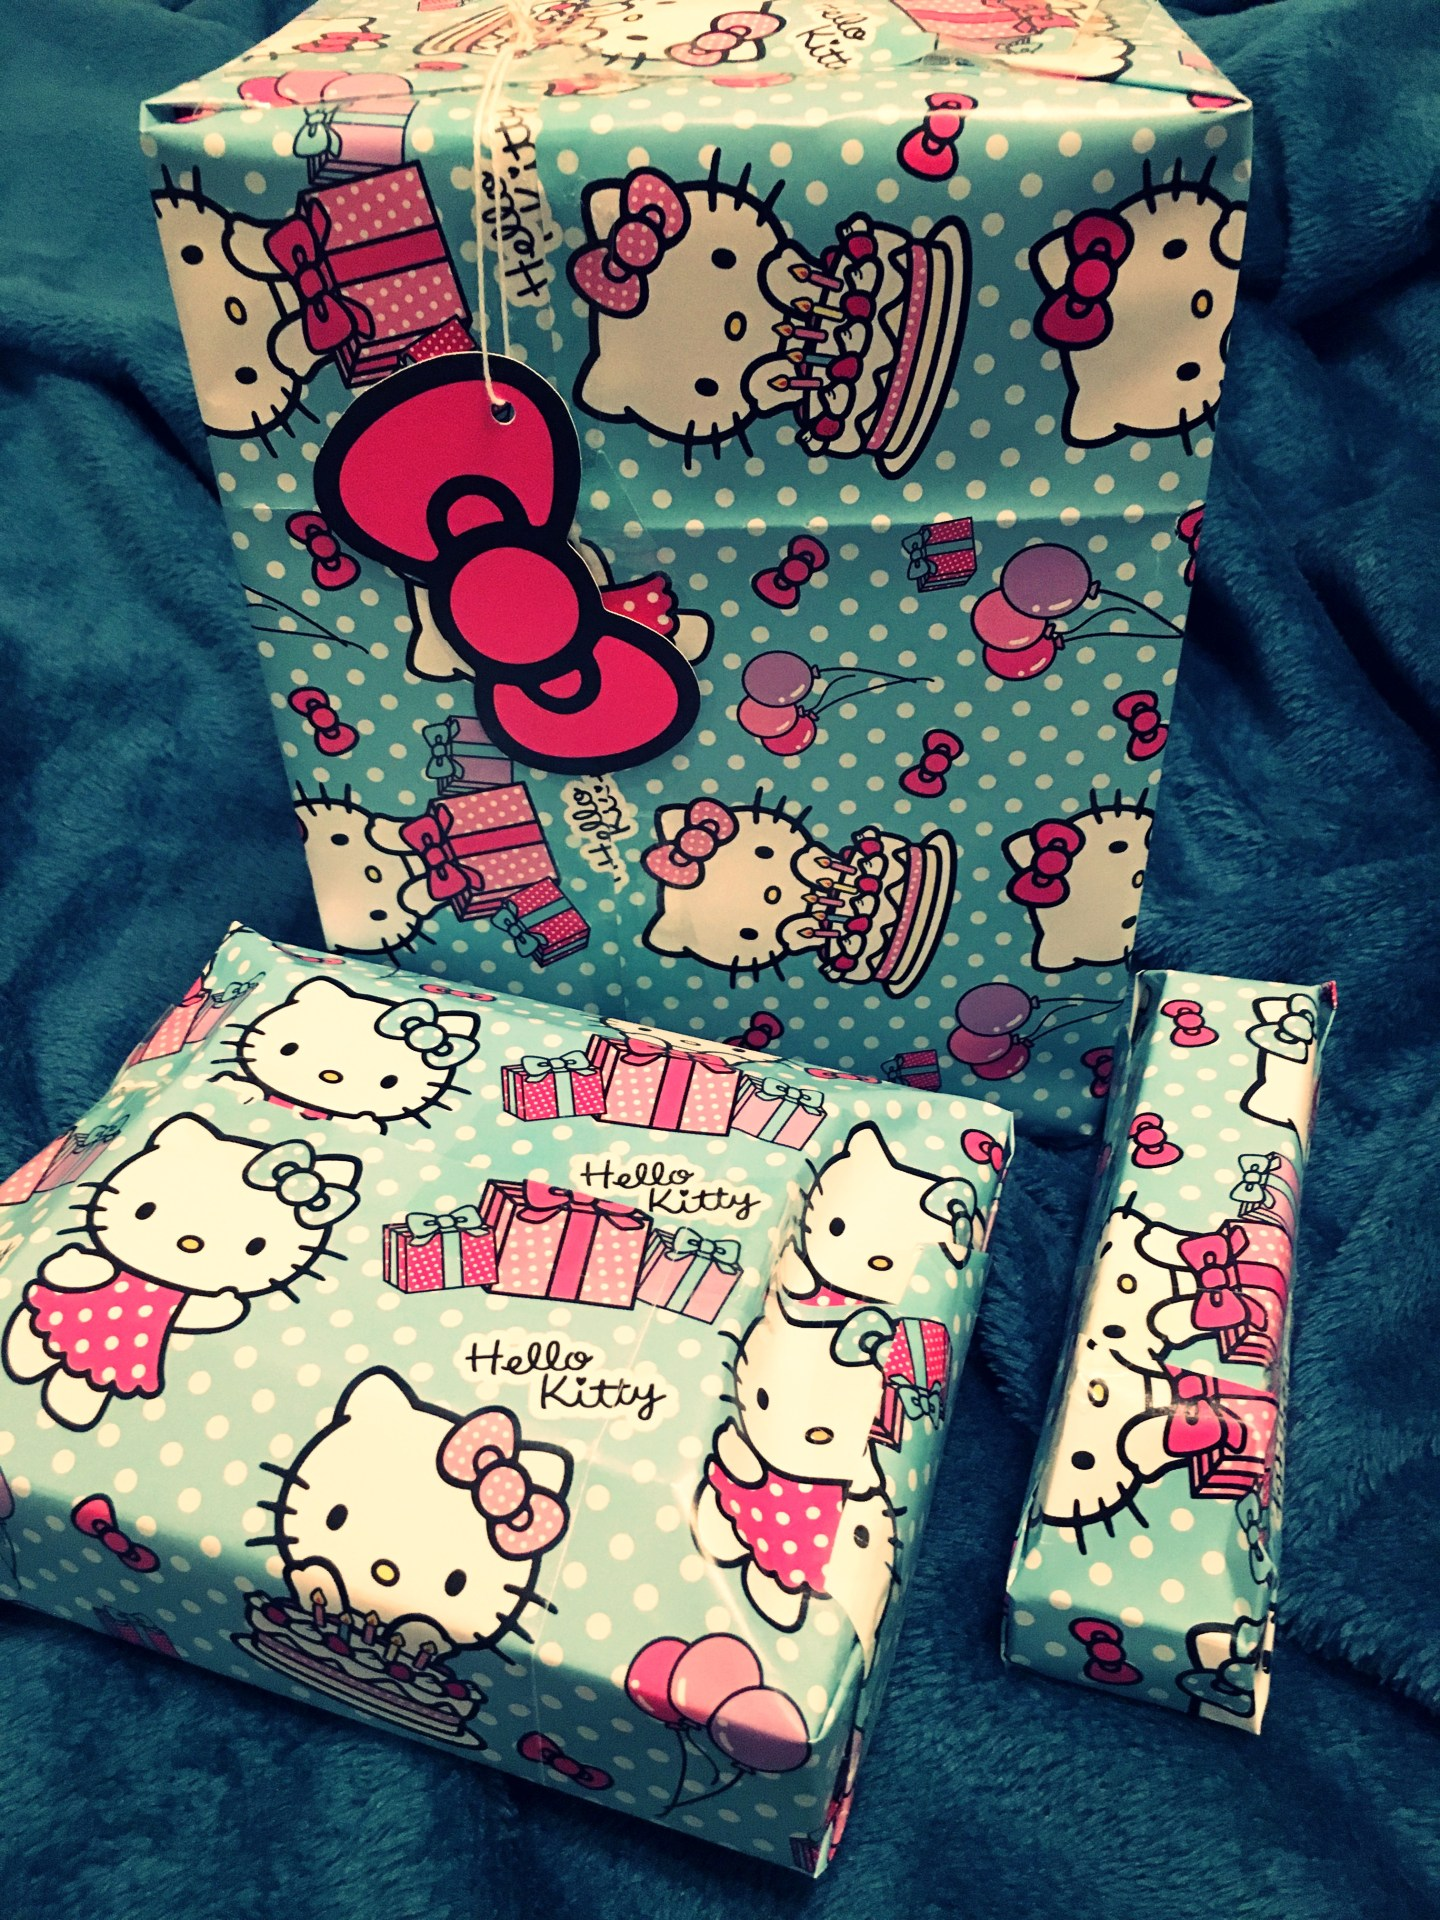 The presents for my mum wrapped in green and pink Hello Kitty wrapping paper.